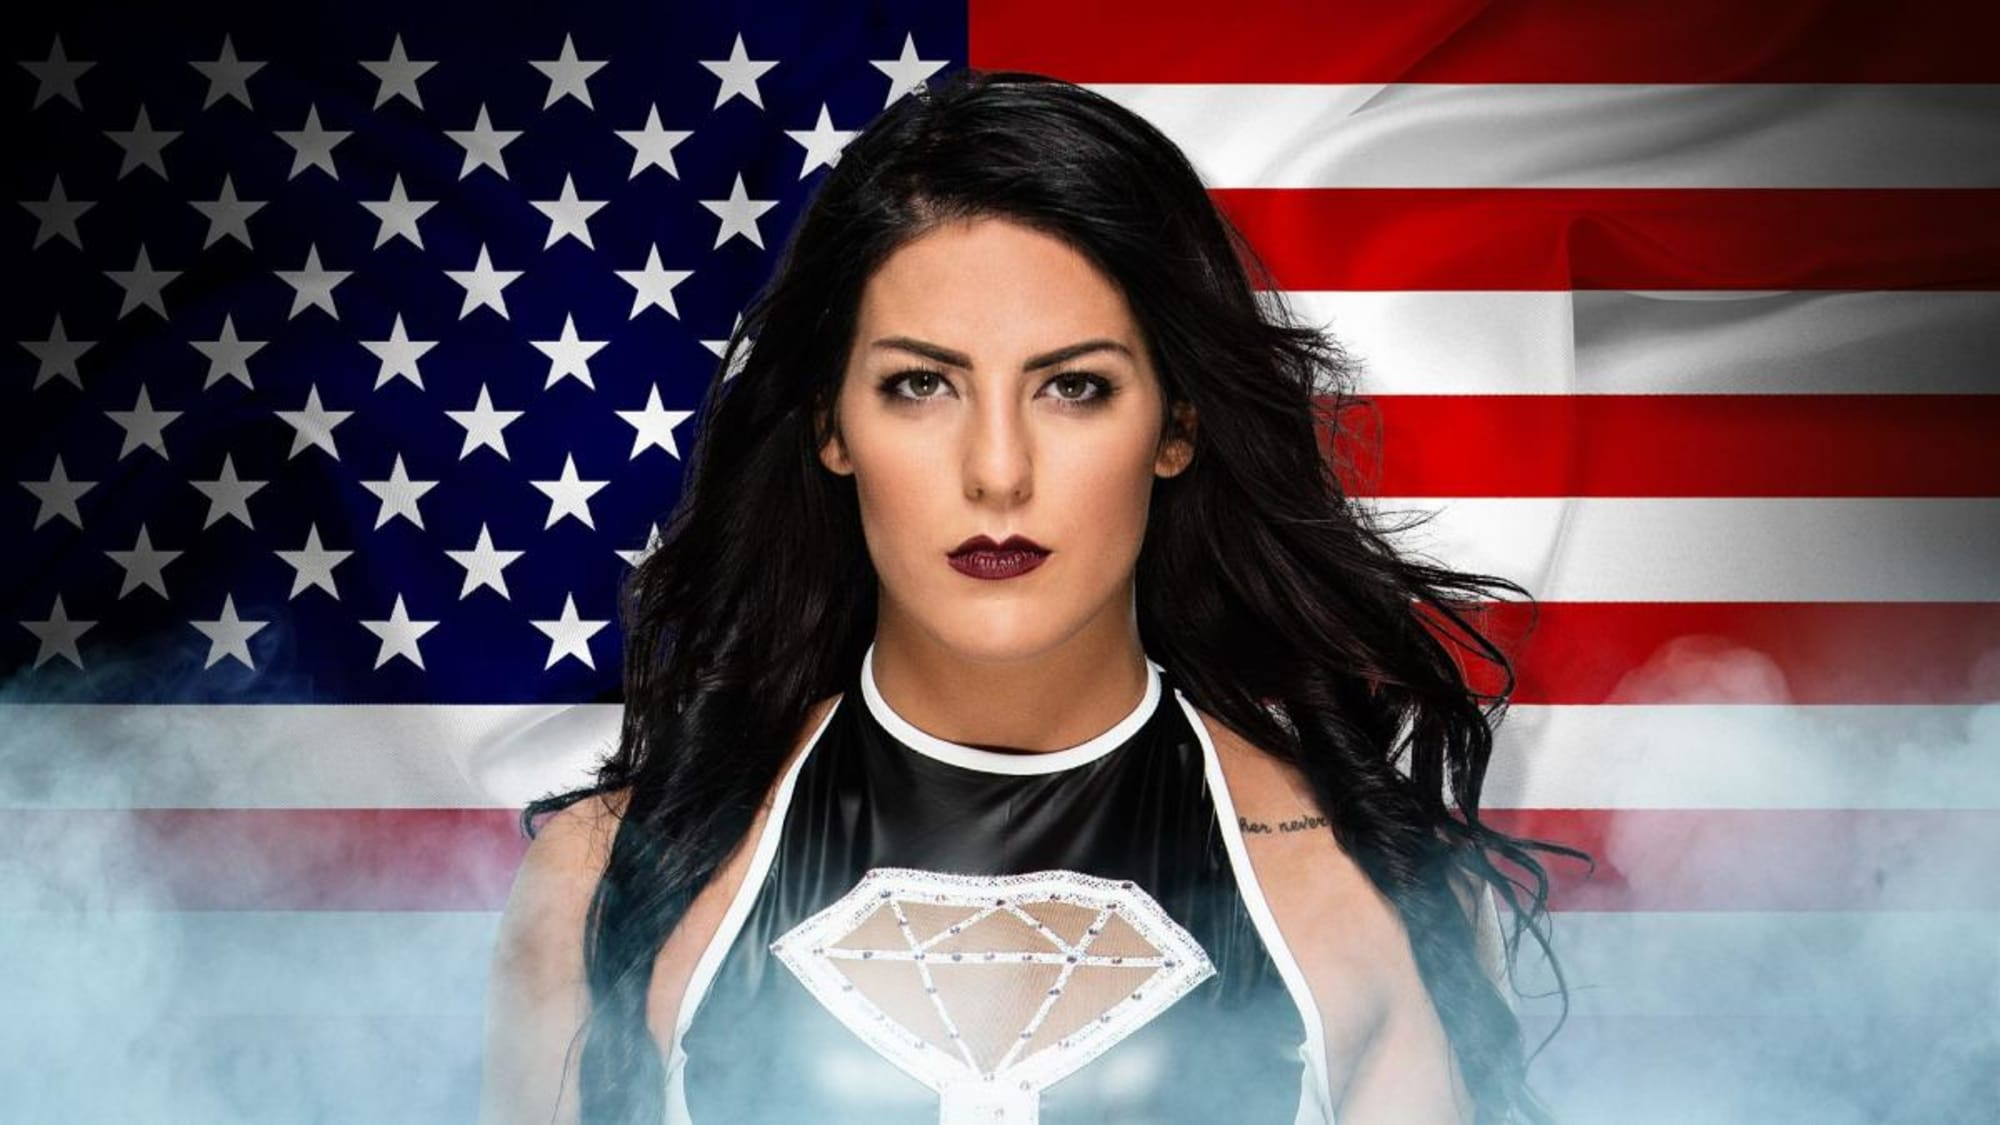 Tessa Blanchard's statement lacks accountability for past issues